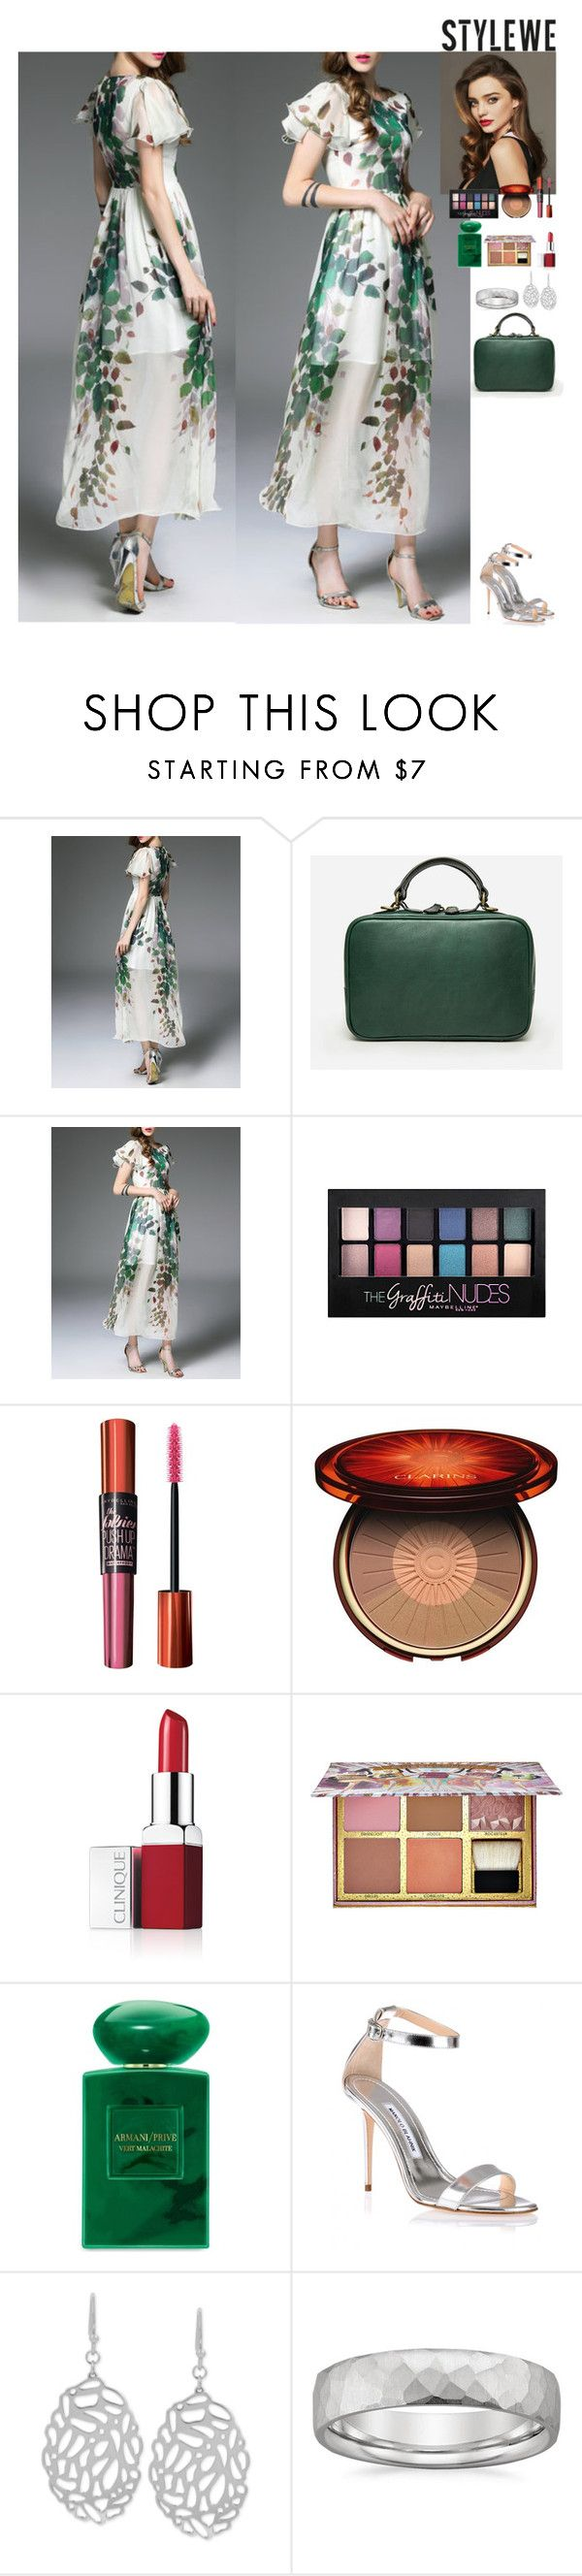 Event StyleWe by eliza-redkina on Polyvore featuring мода, Manolo Blahnik, Everest, Maybelline, Benefit, Clarins, Clinique, Giorgio Armani, Kerr® and outfit